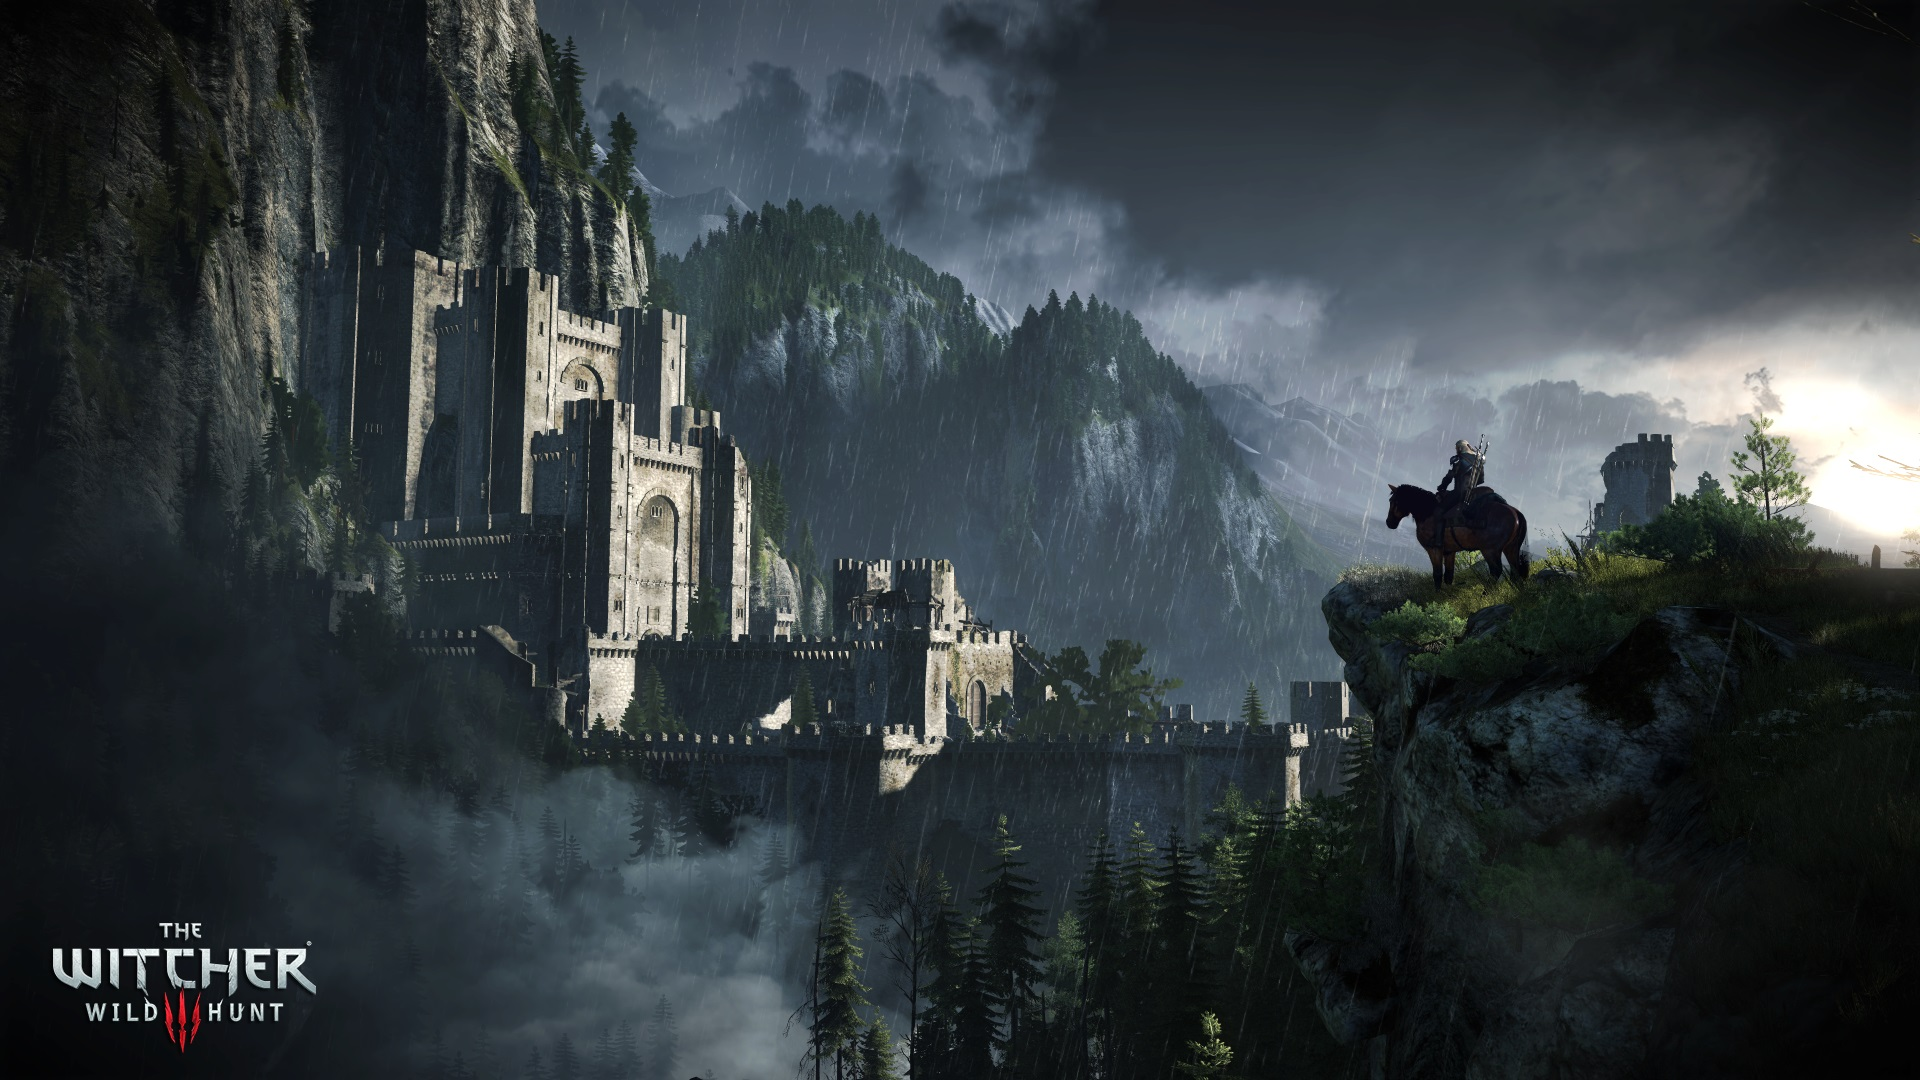 the witcher - photo #41